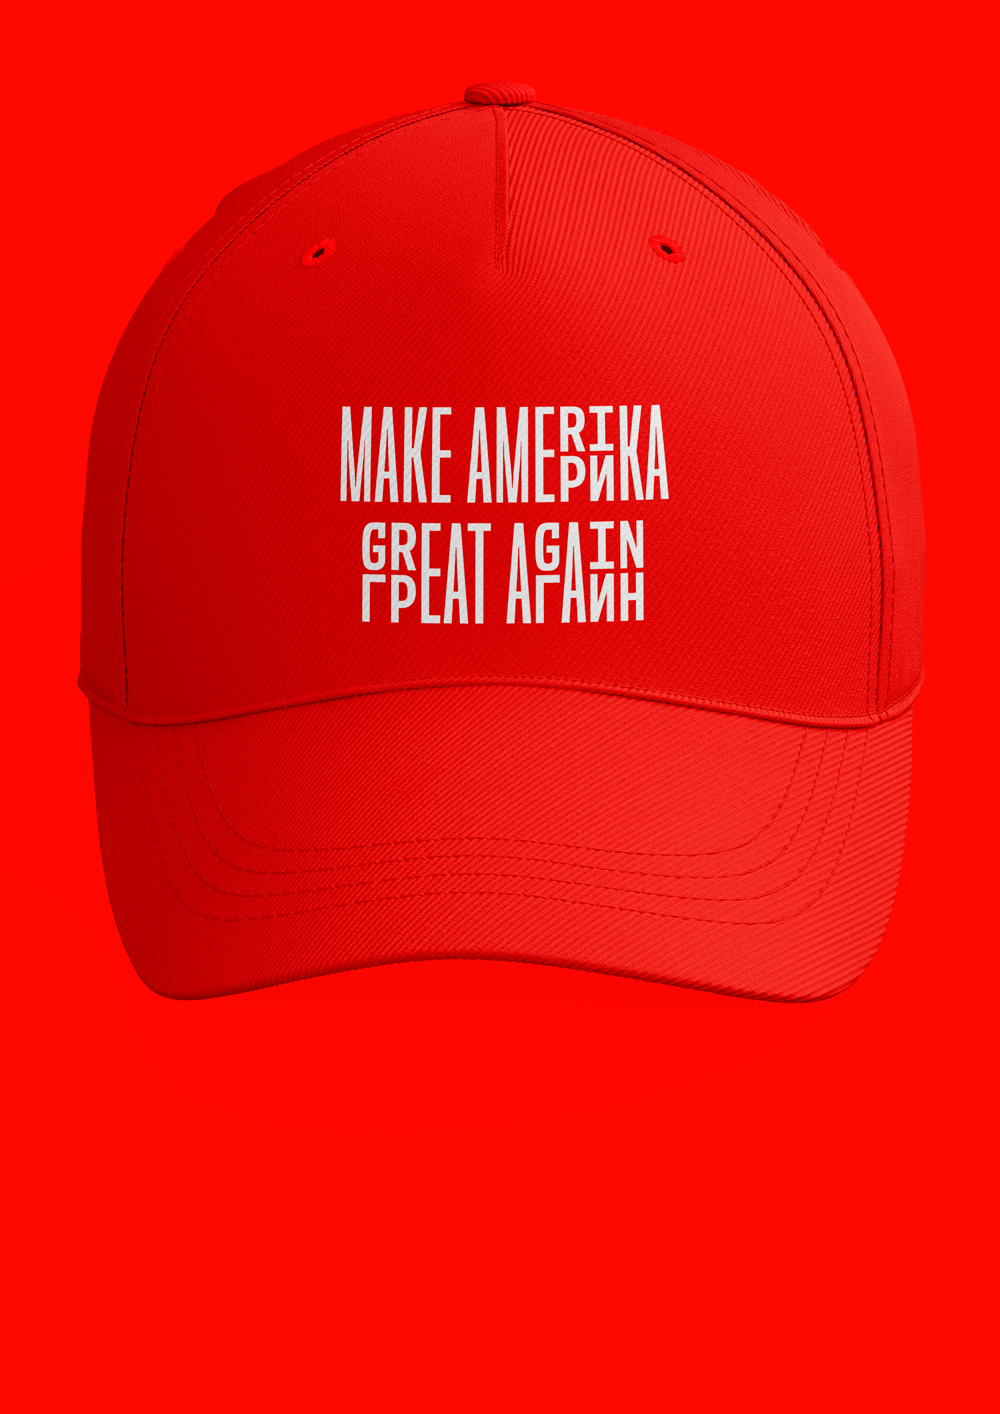 make america great again cap latin cyrillic edition fonts in use